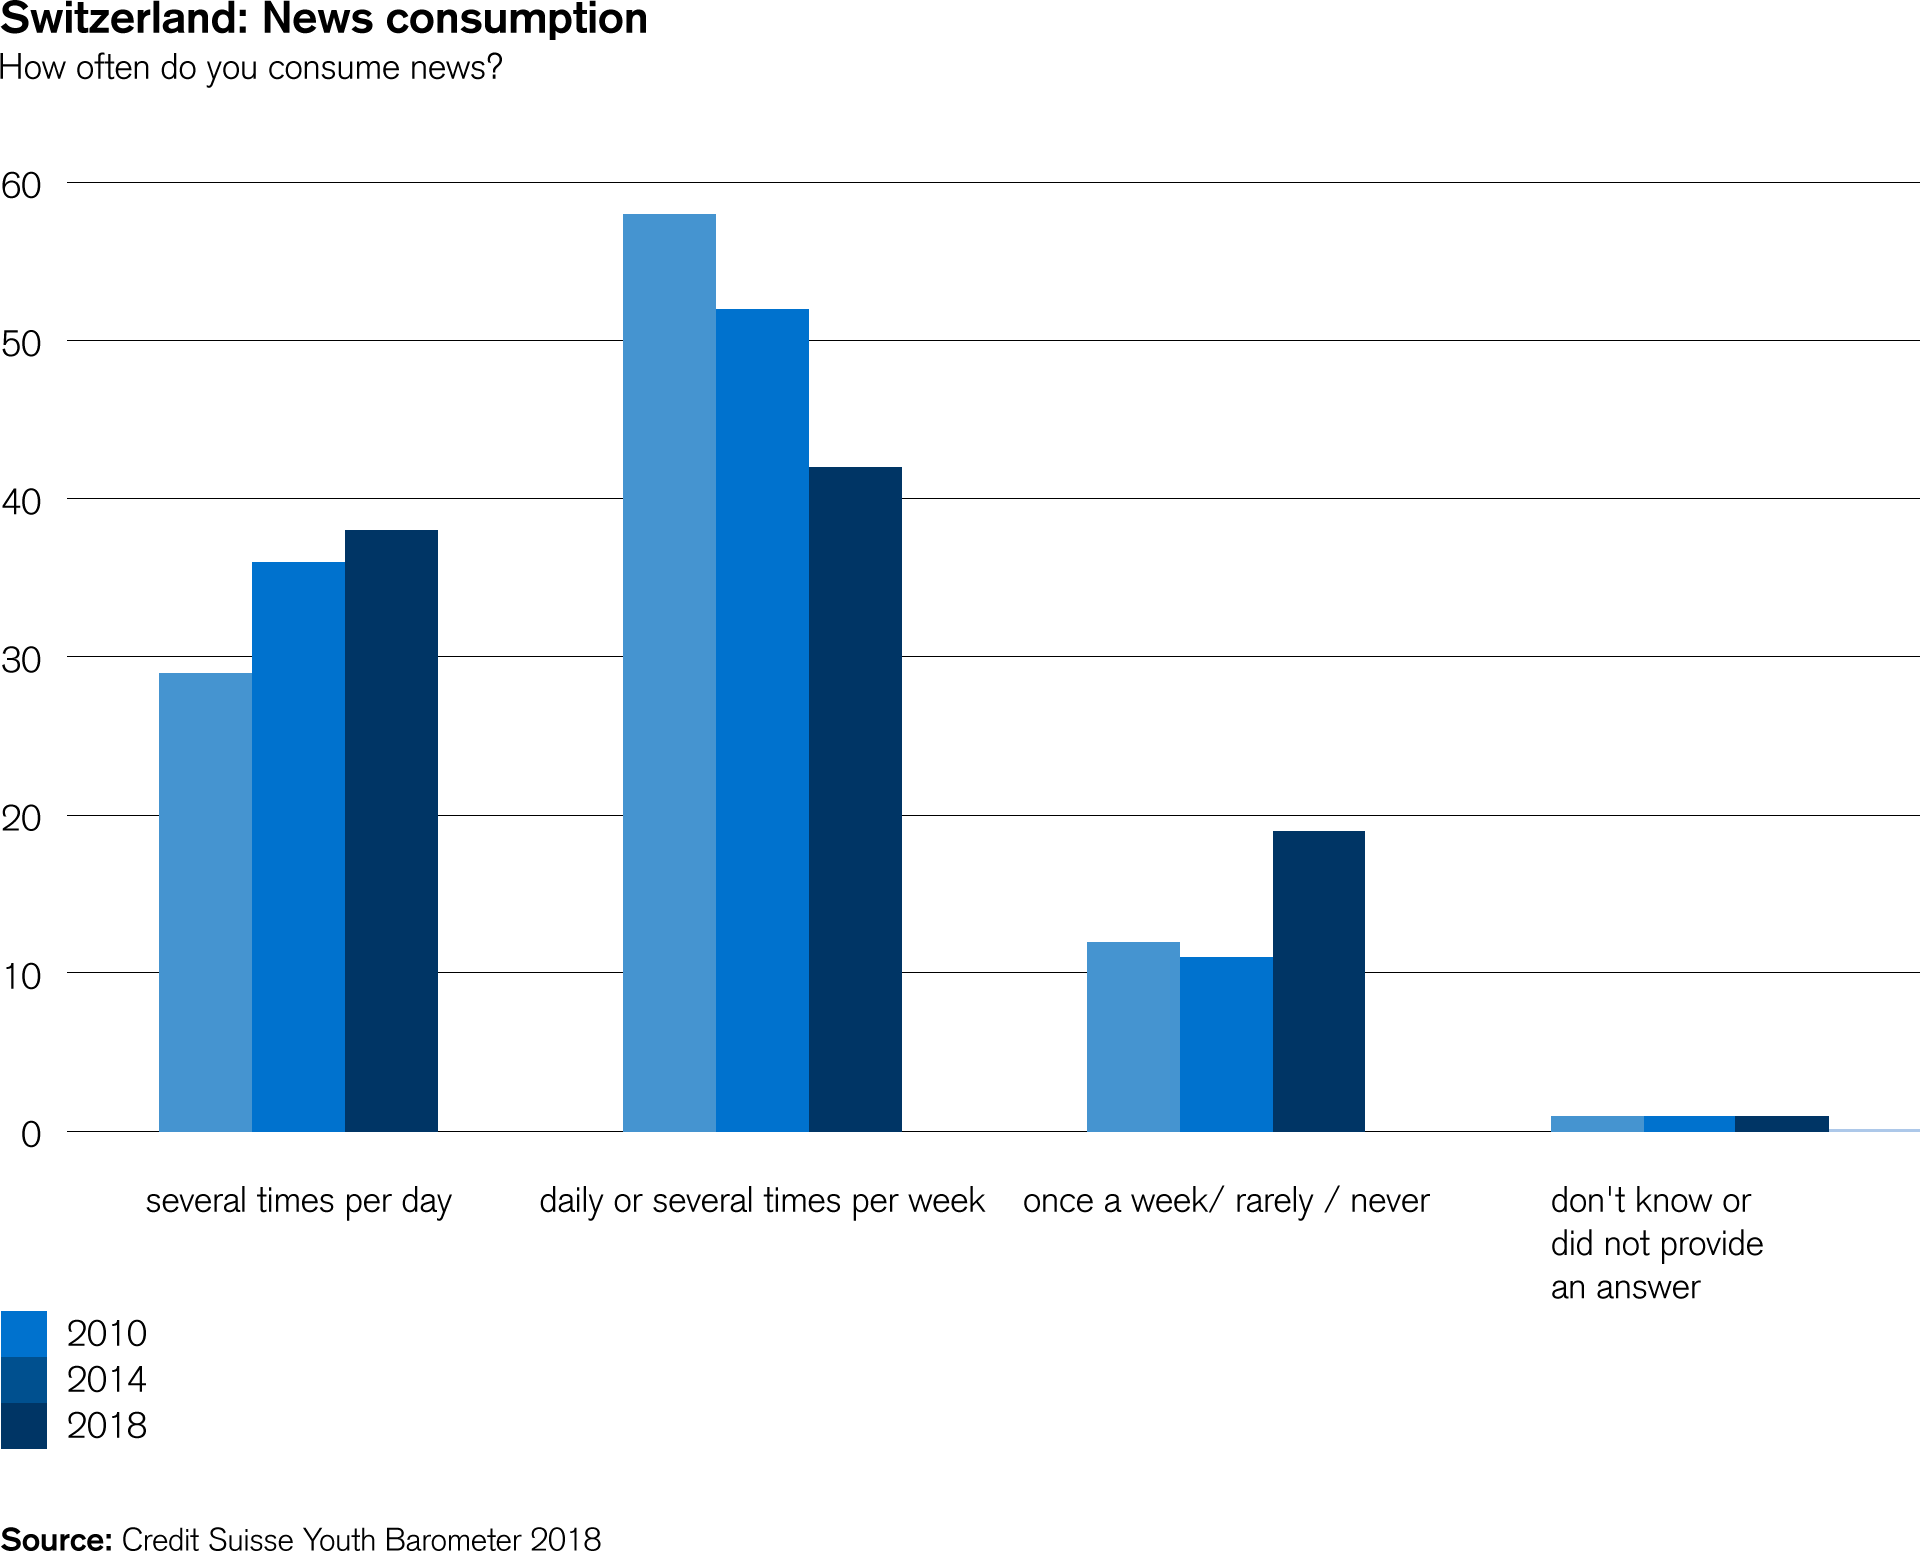 Switzerland: News consumption